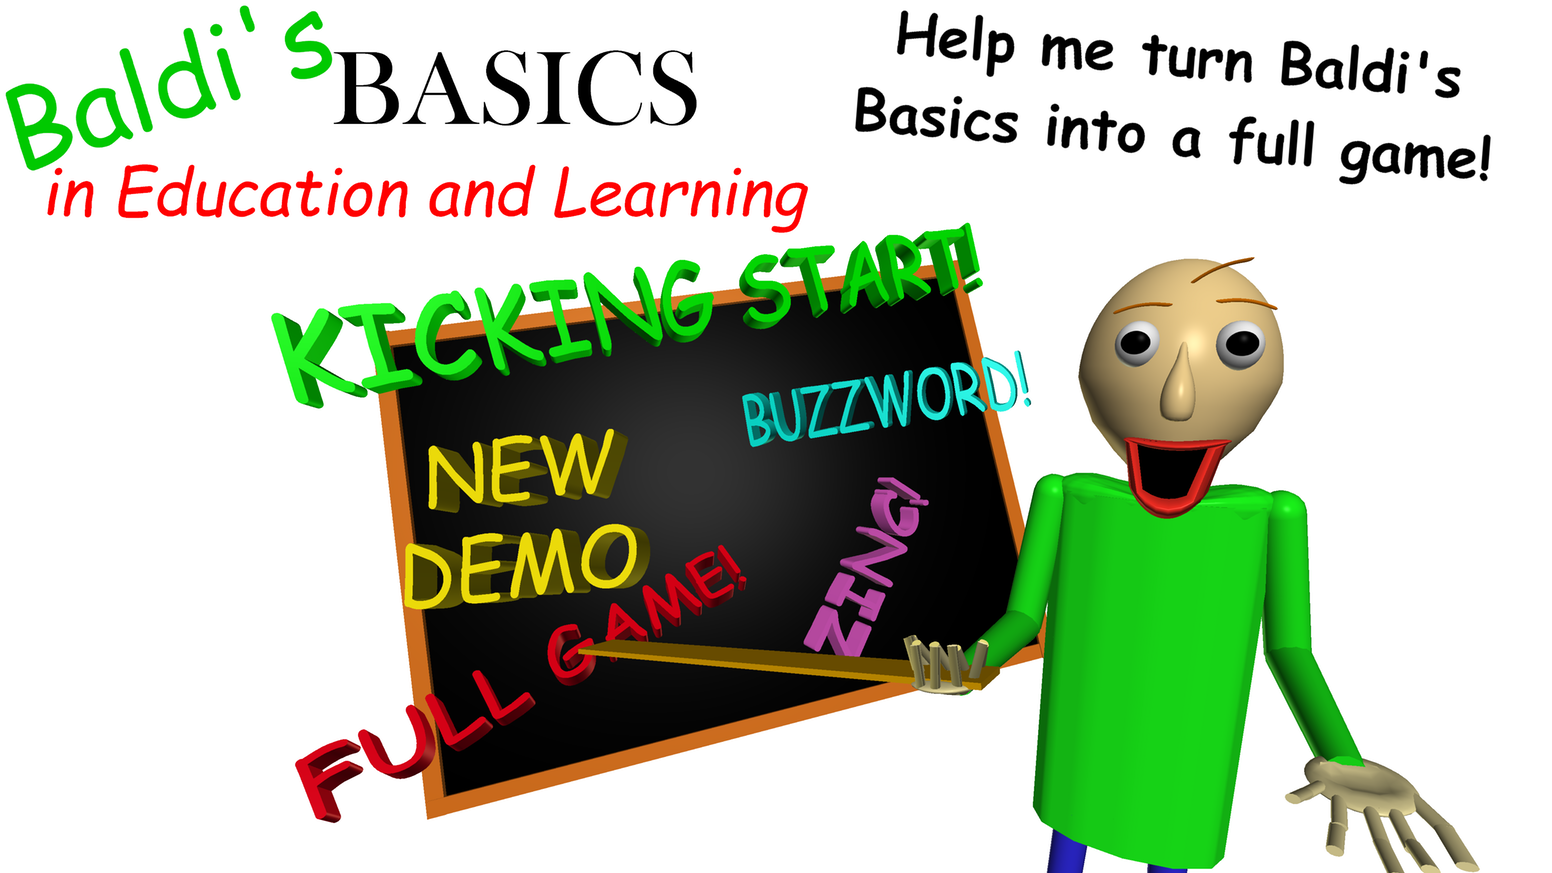 Baldi's Basics in Education and Learning Full game! by